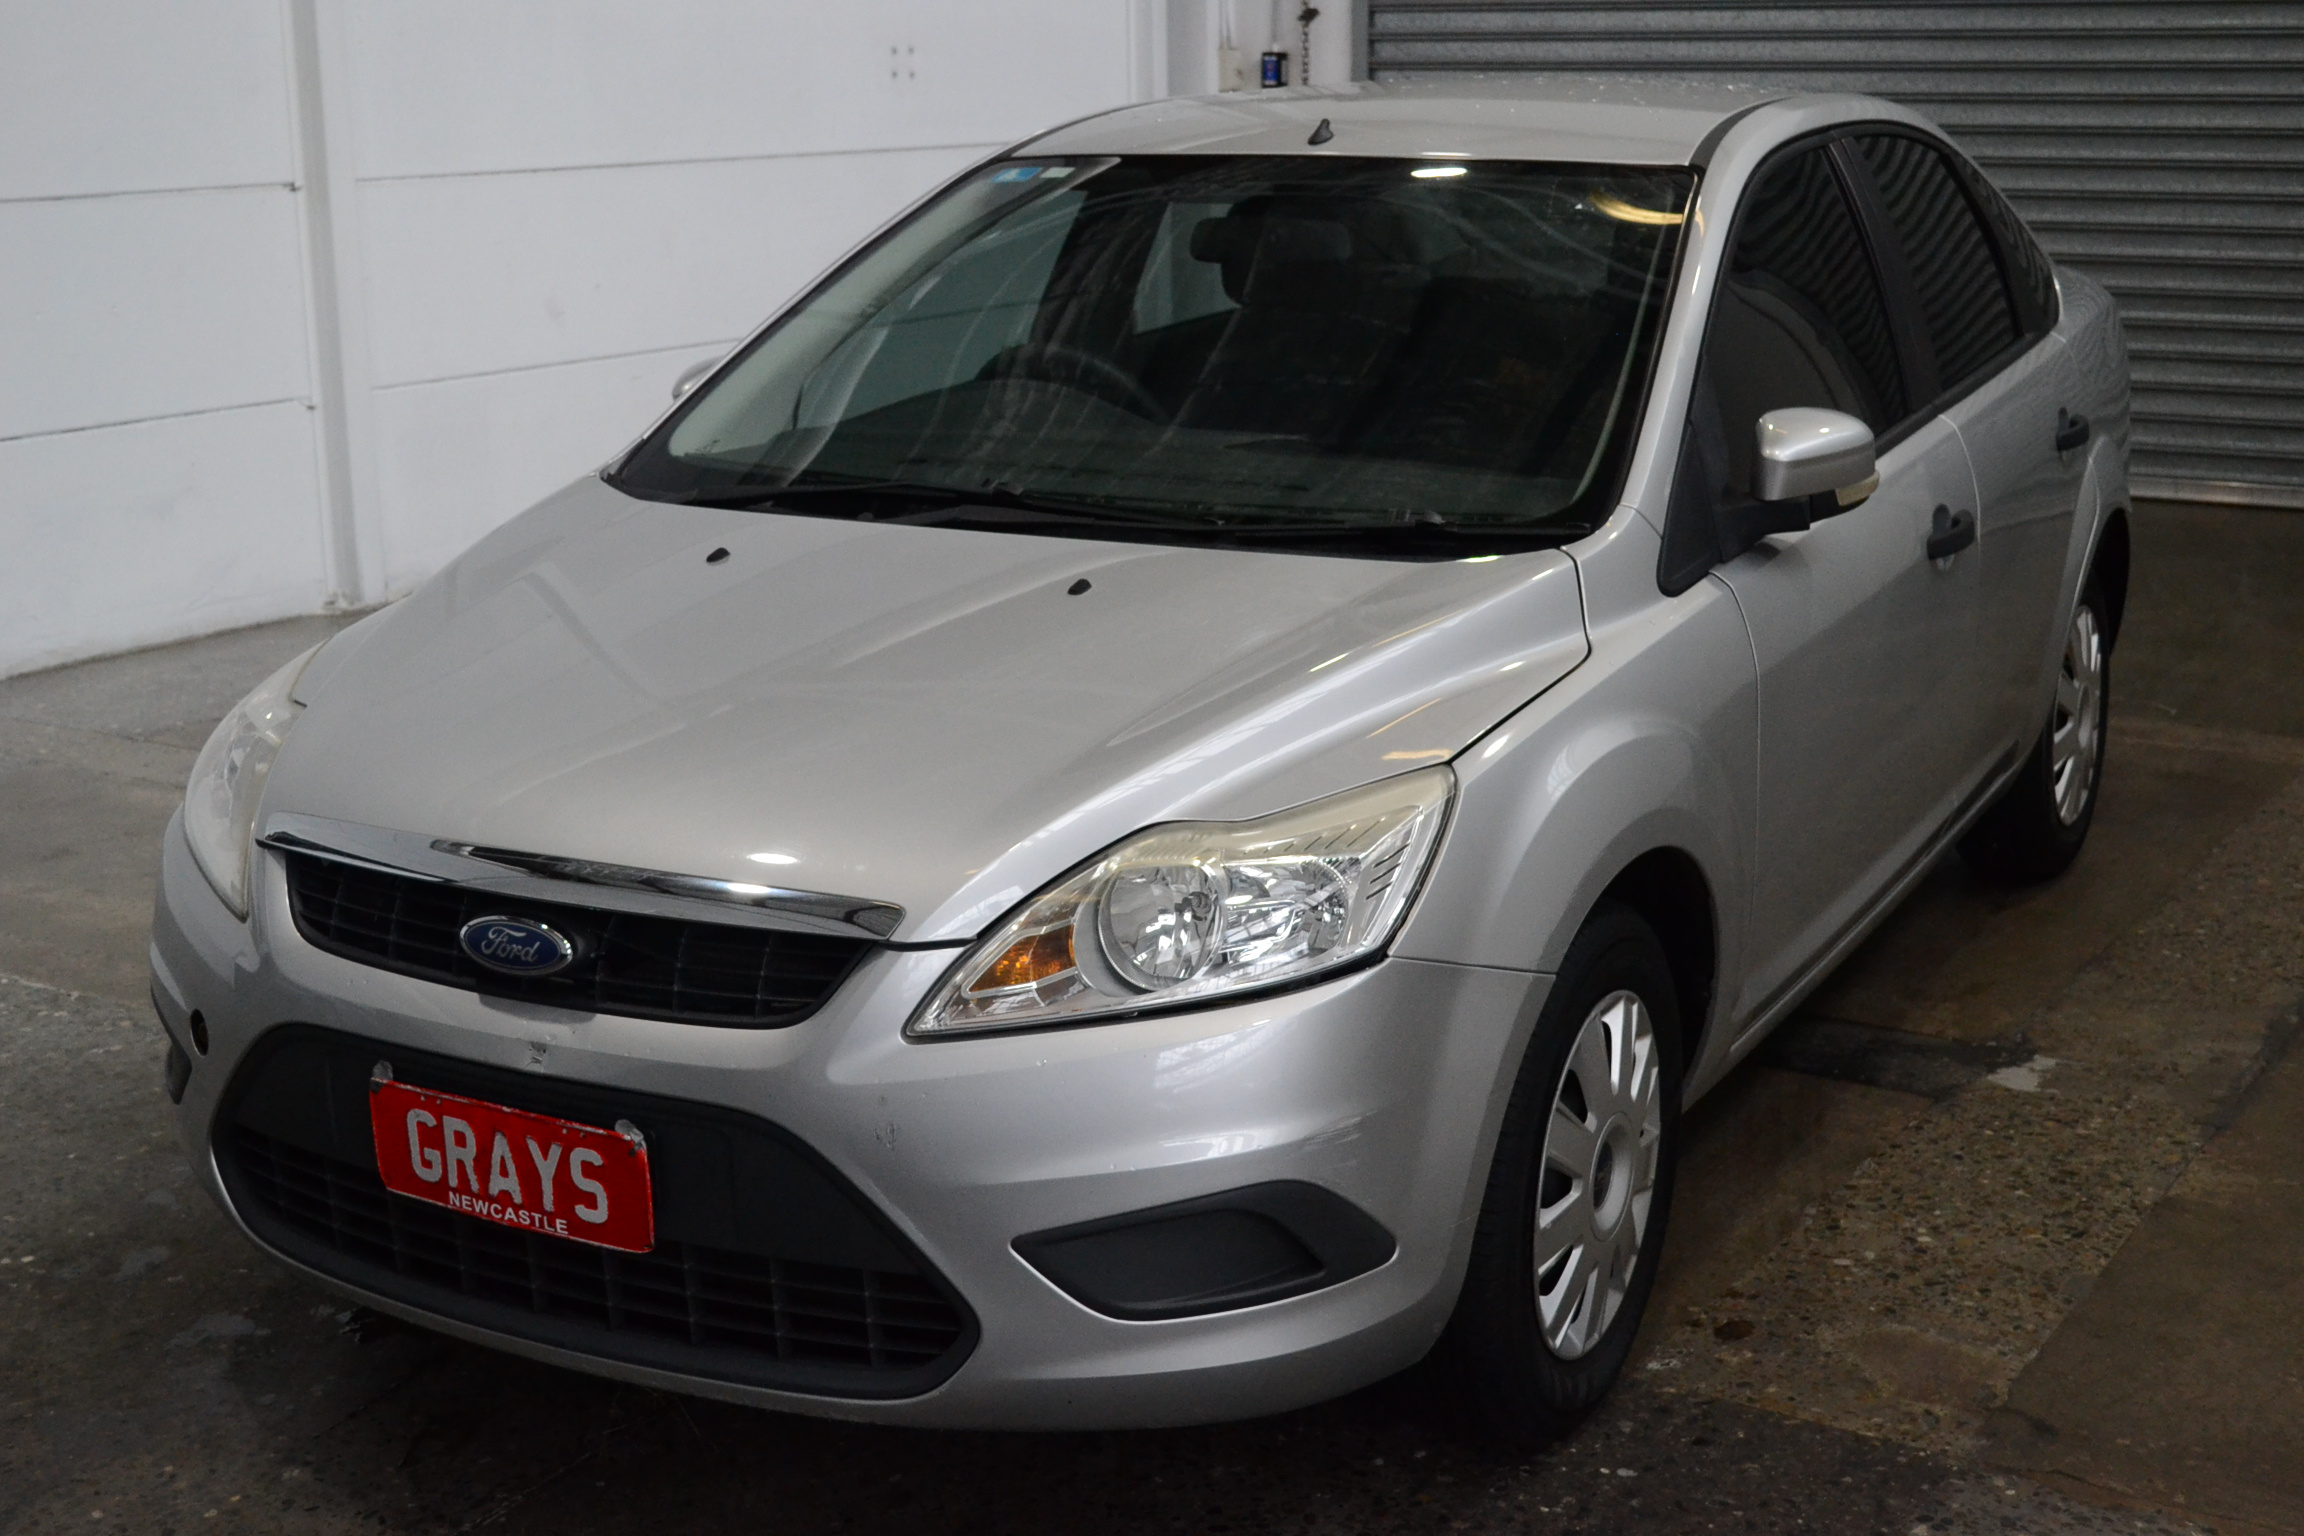 2009 Ford Focus CL LV Automatic Sedan